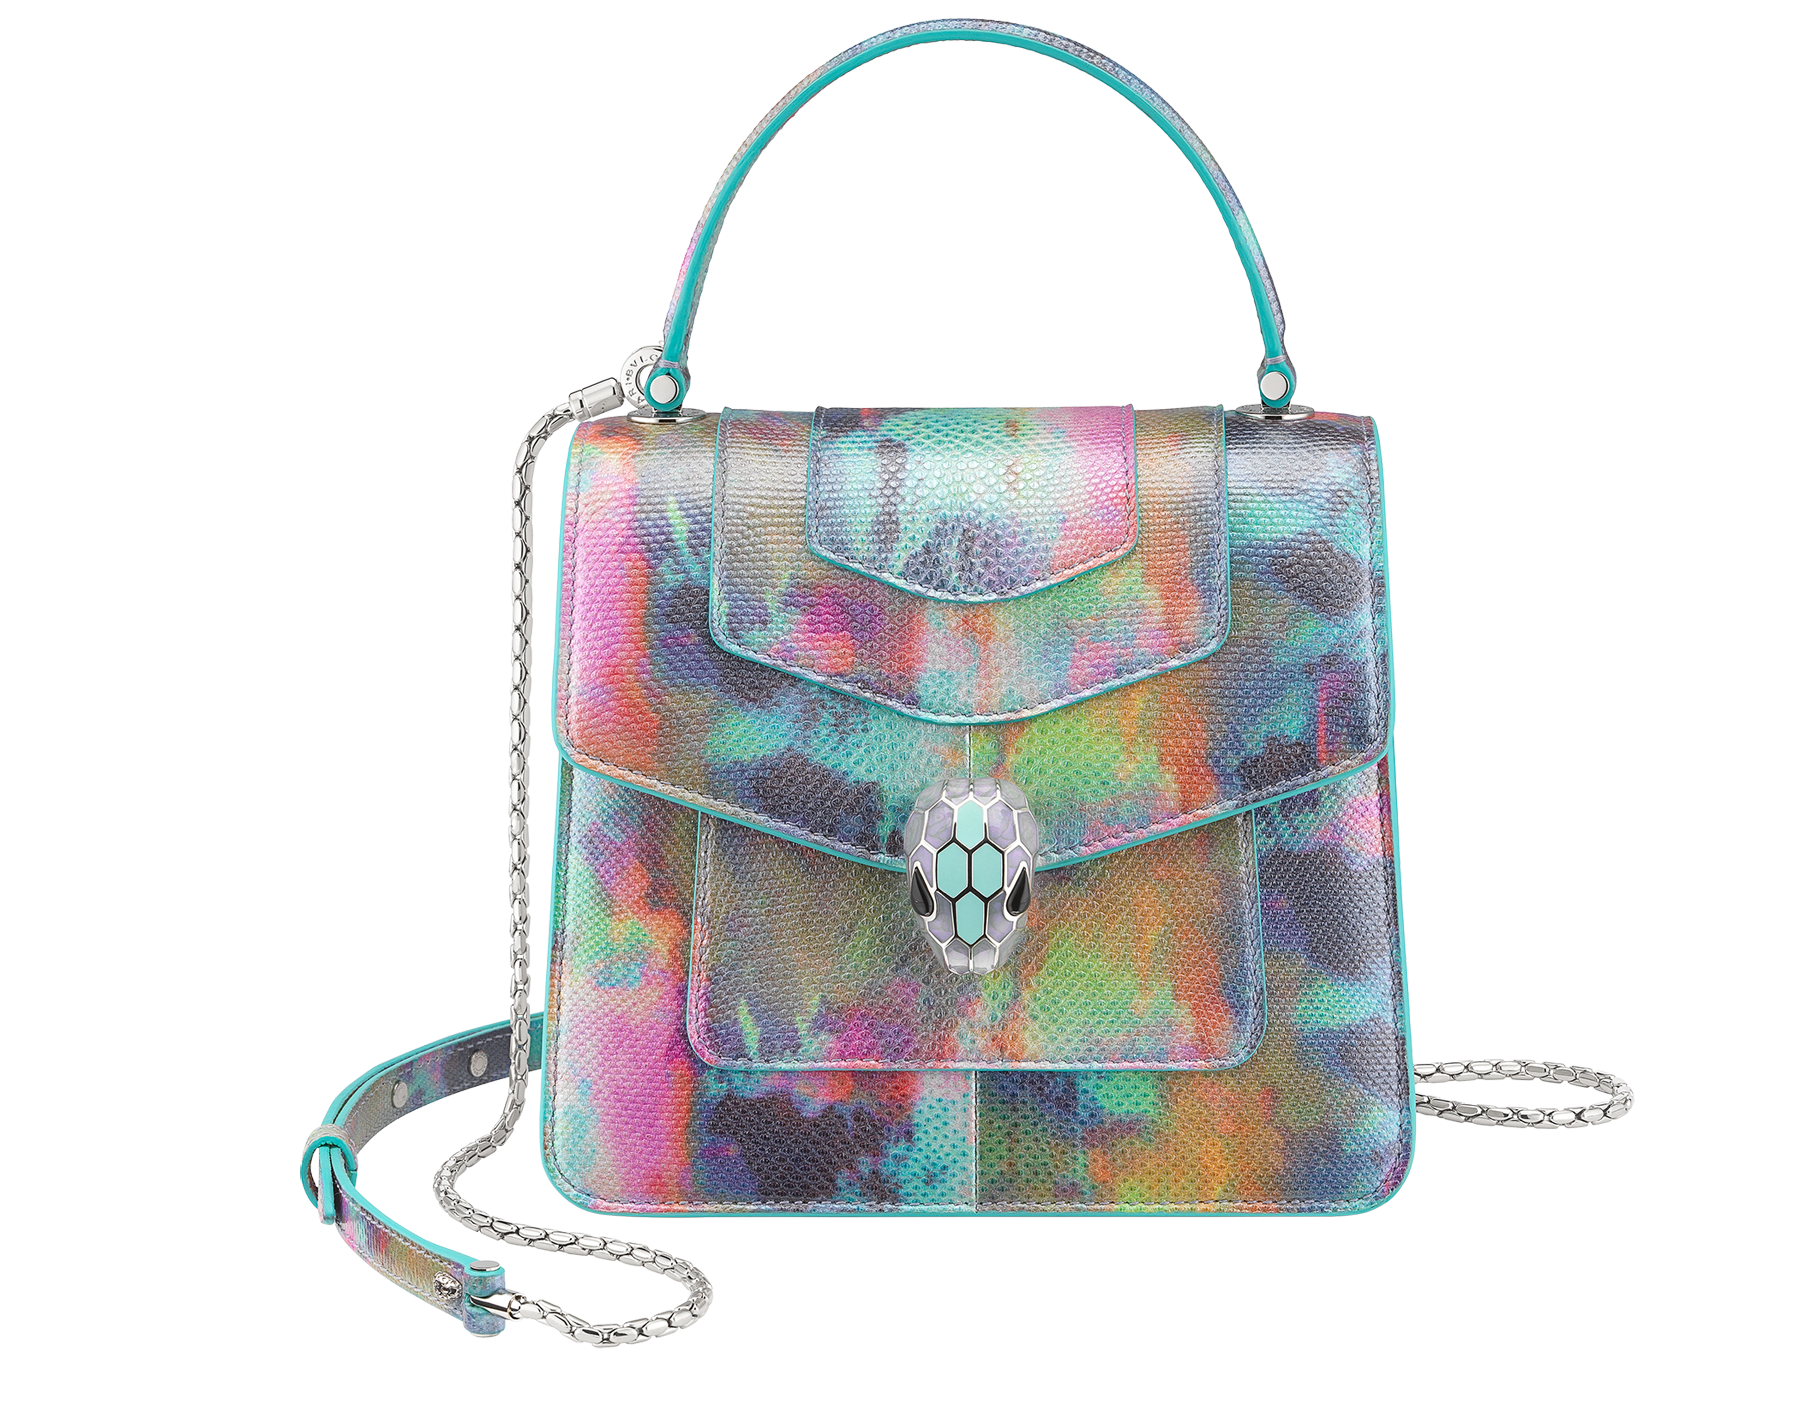 """""""Serpenti Forever """" top handle bag in Forest Emerald green shiny karung skin with Zircon bay blue gros grain internal lining. Iconic snakehead closure in light gold plated brass enriched with black and white agate enamel and green malachite eyes 1122-SK image 1"""